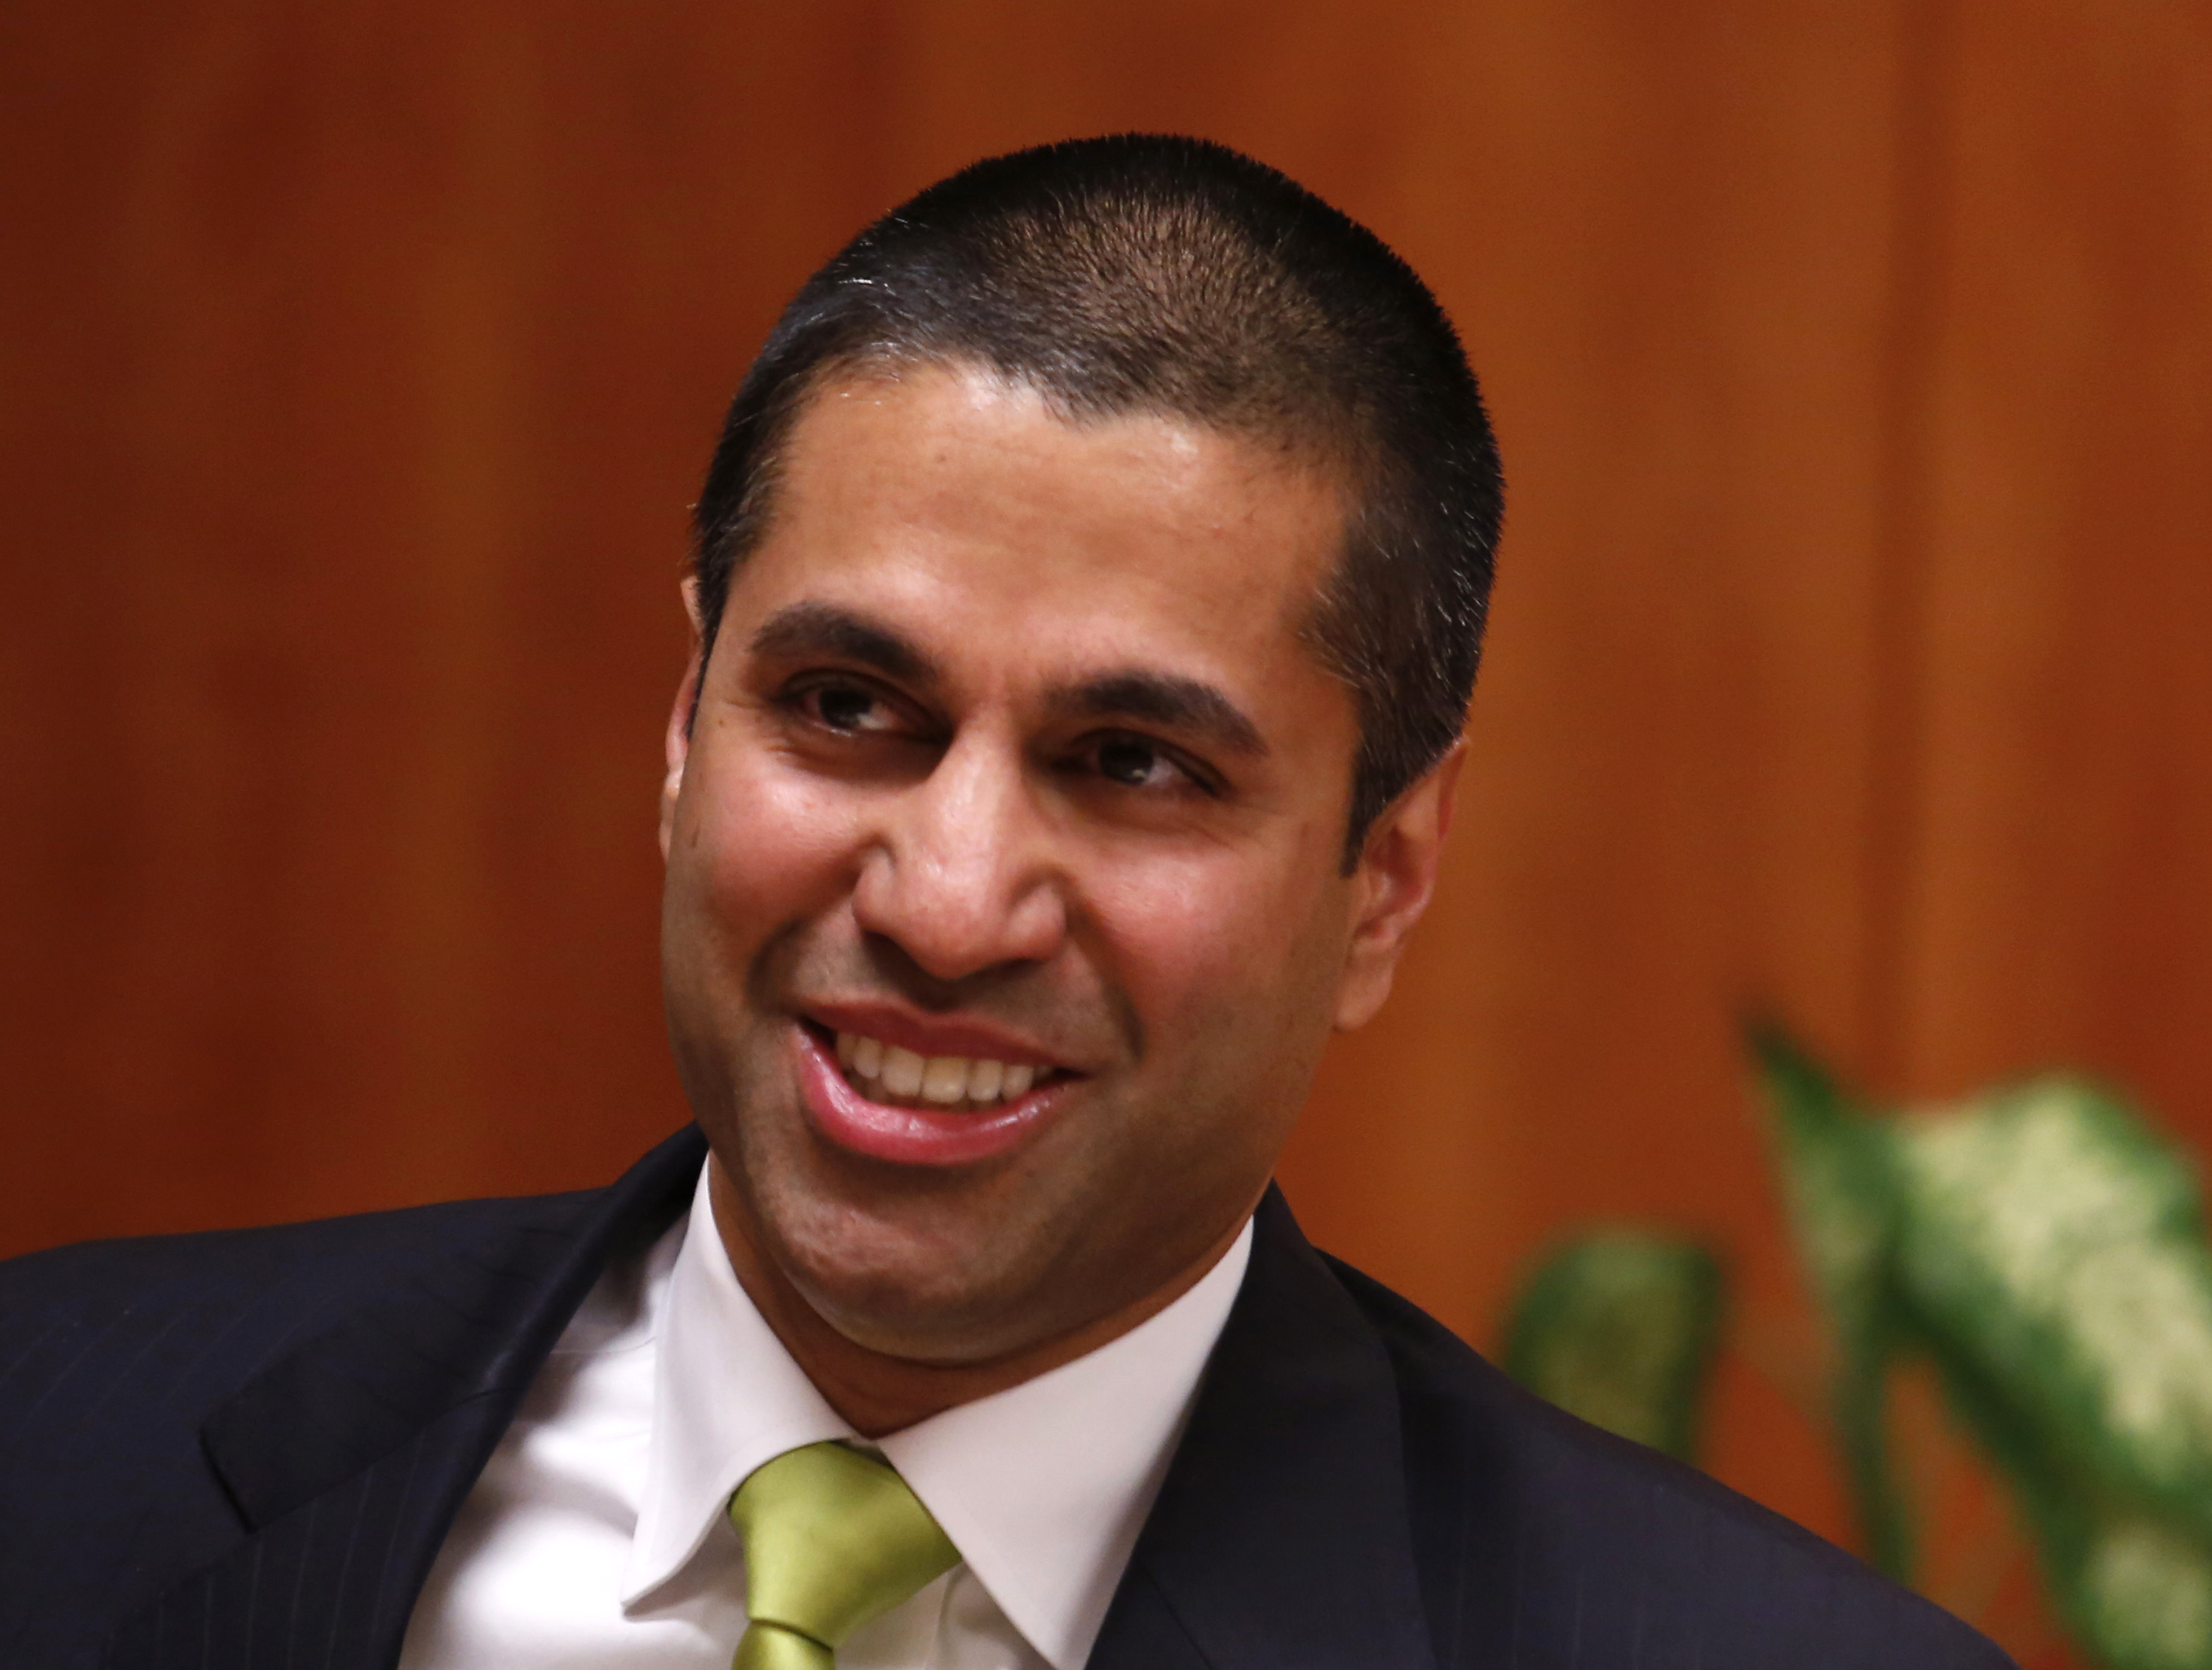 Net Neutrality Critic Ajit Pai Named New Head of FCC